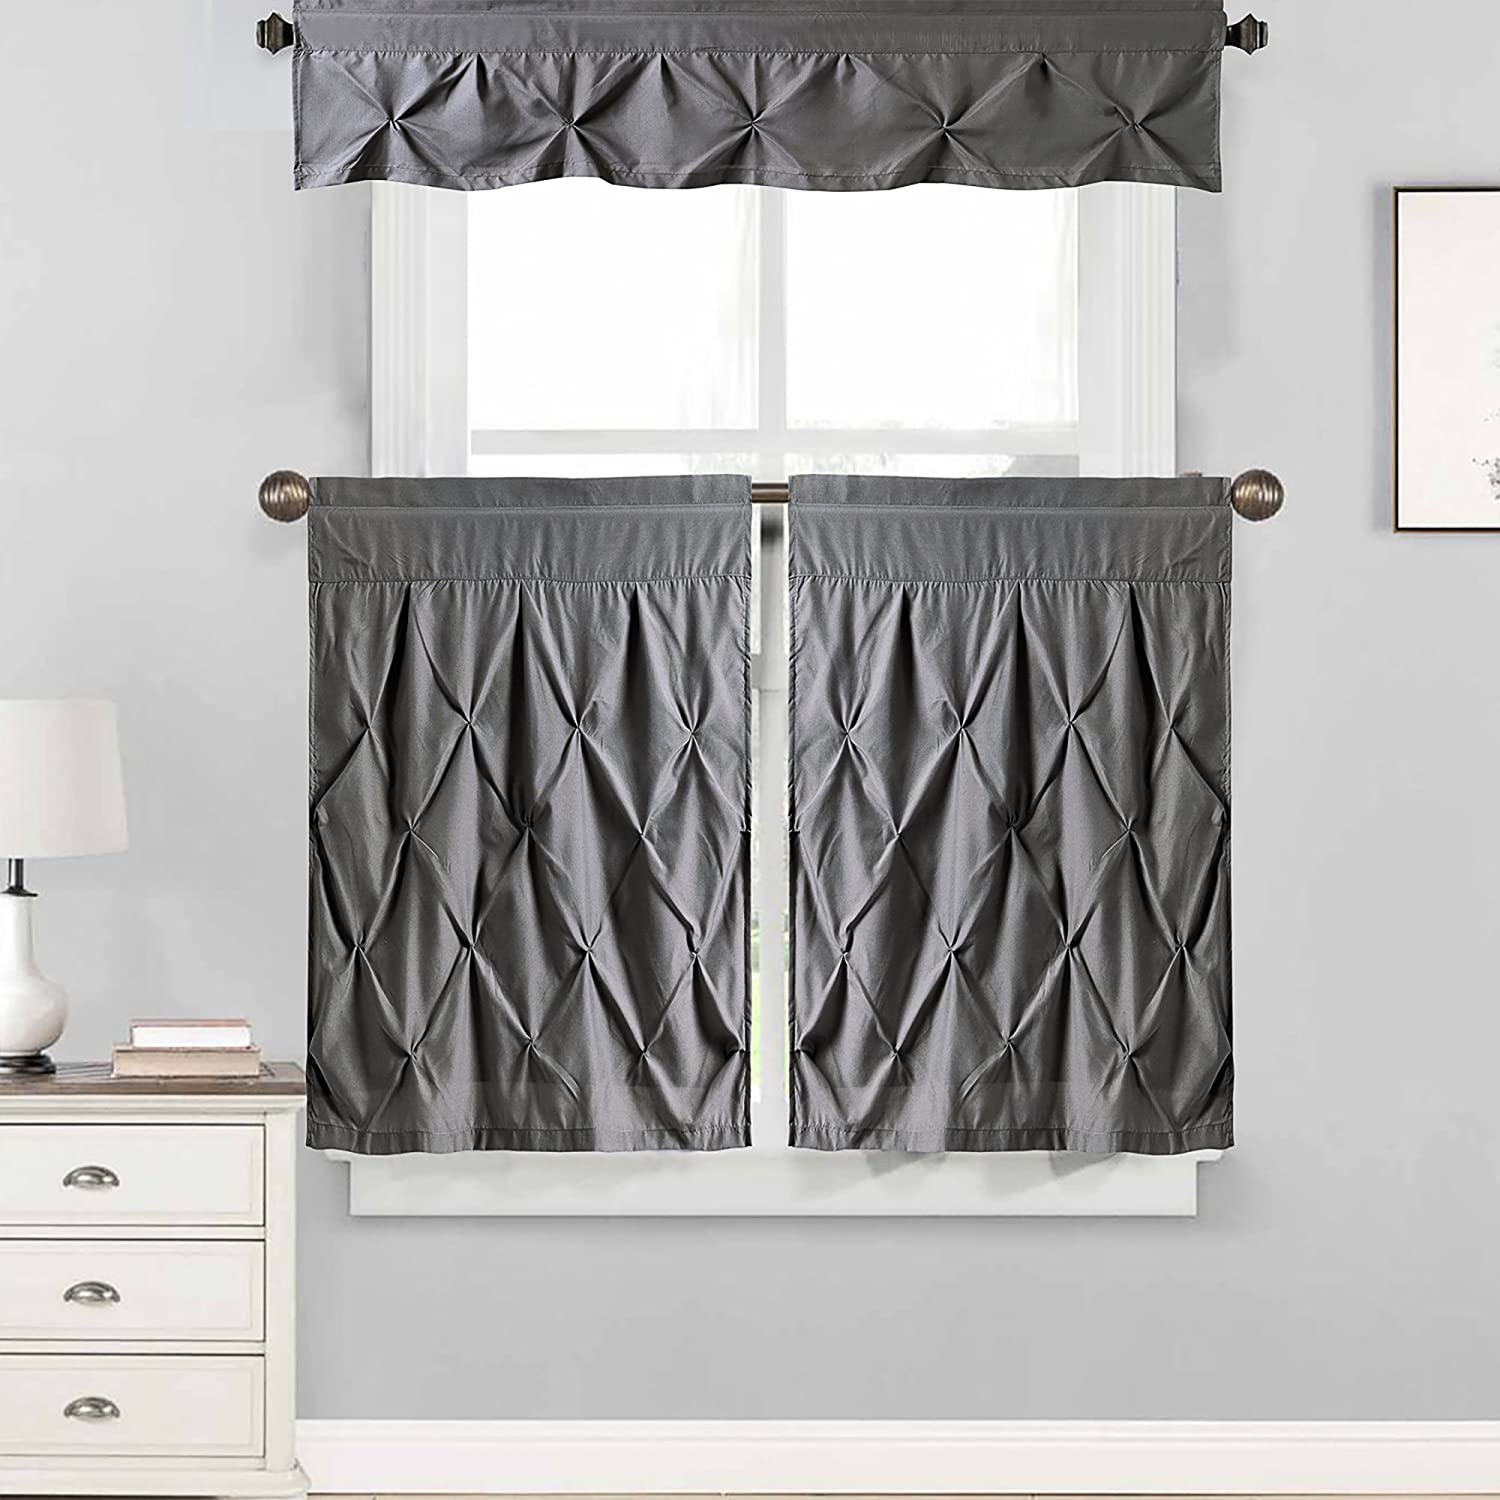 "Sweet Home Collection Choice of Valance, 24"" or 36"" Tier, and Kit Curtain Window Treatment, Tier & Valance, Gray"